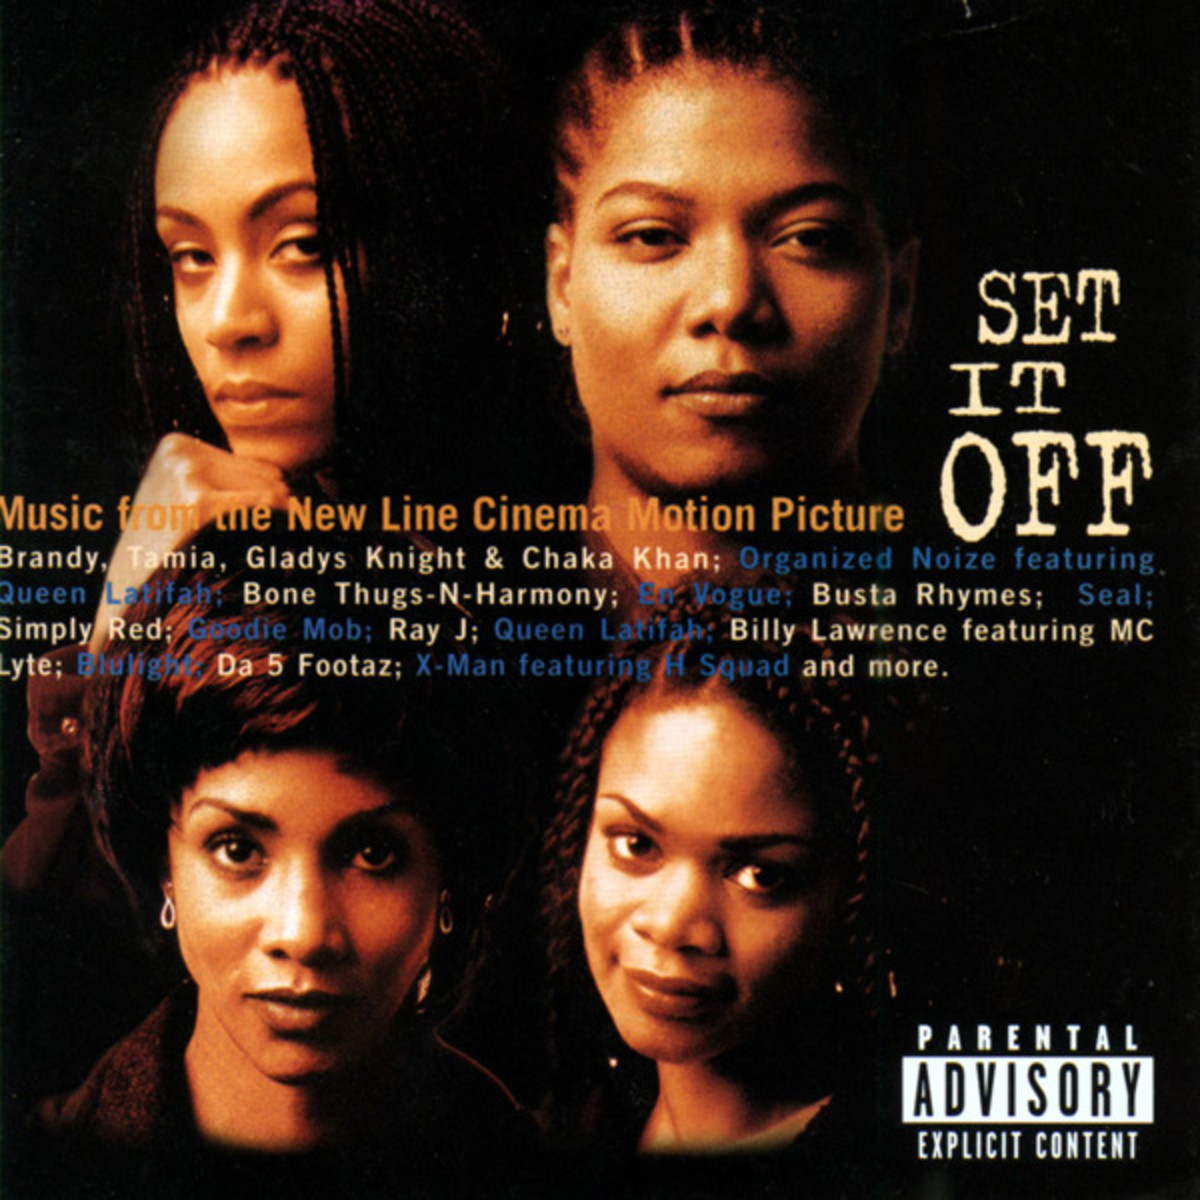 Don't Let Go was originally recorded for the Set It Off Soundtrack.